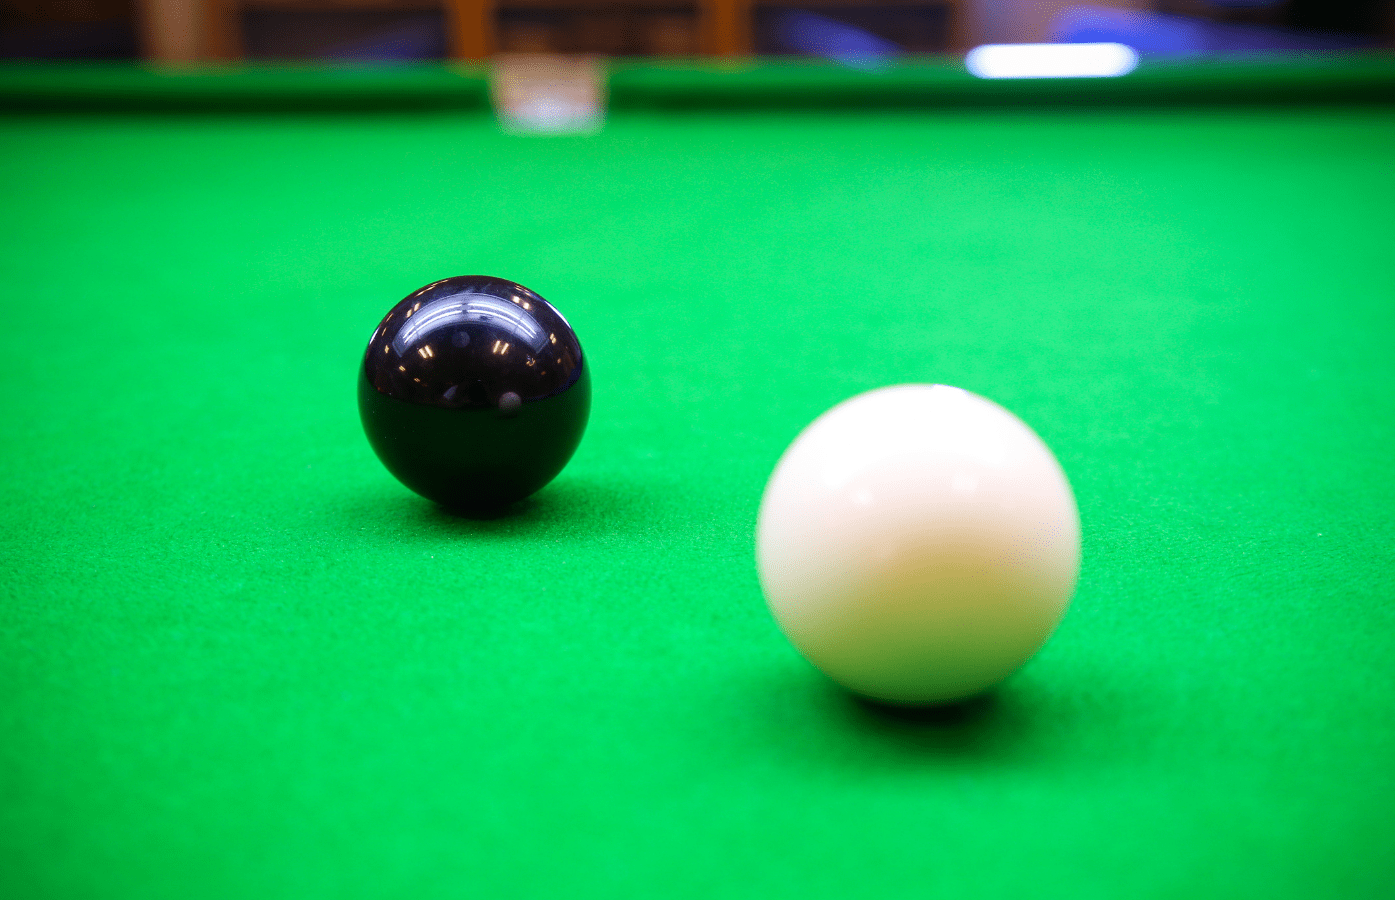 why do snooker players not pot the black